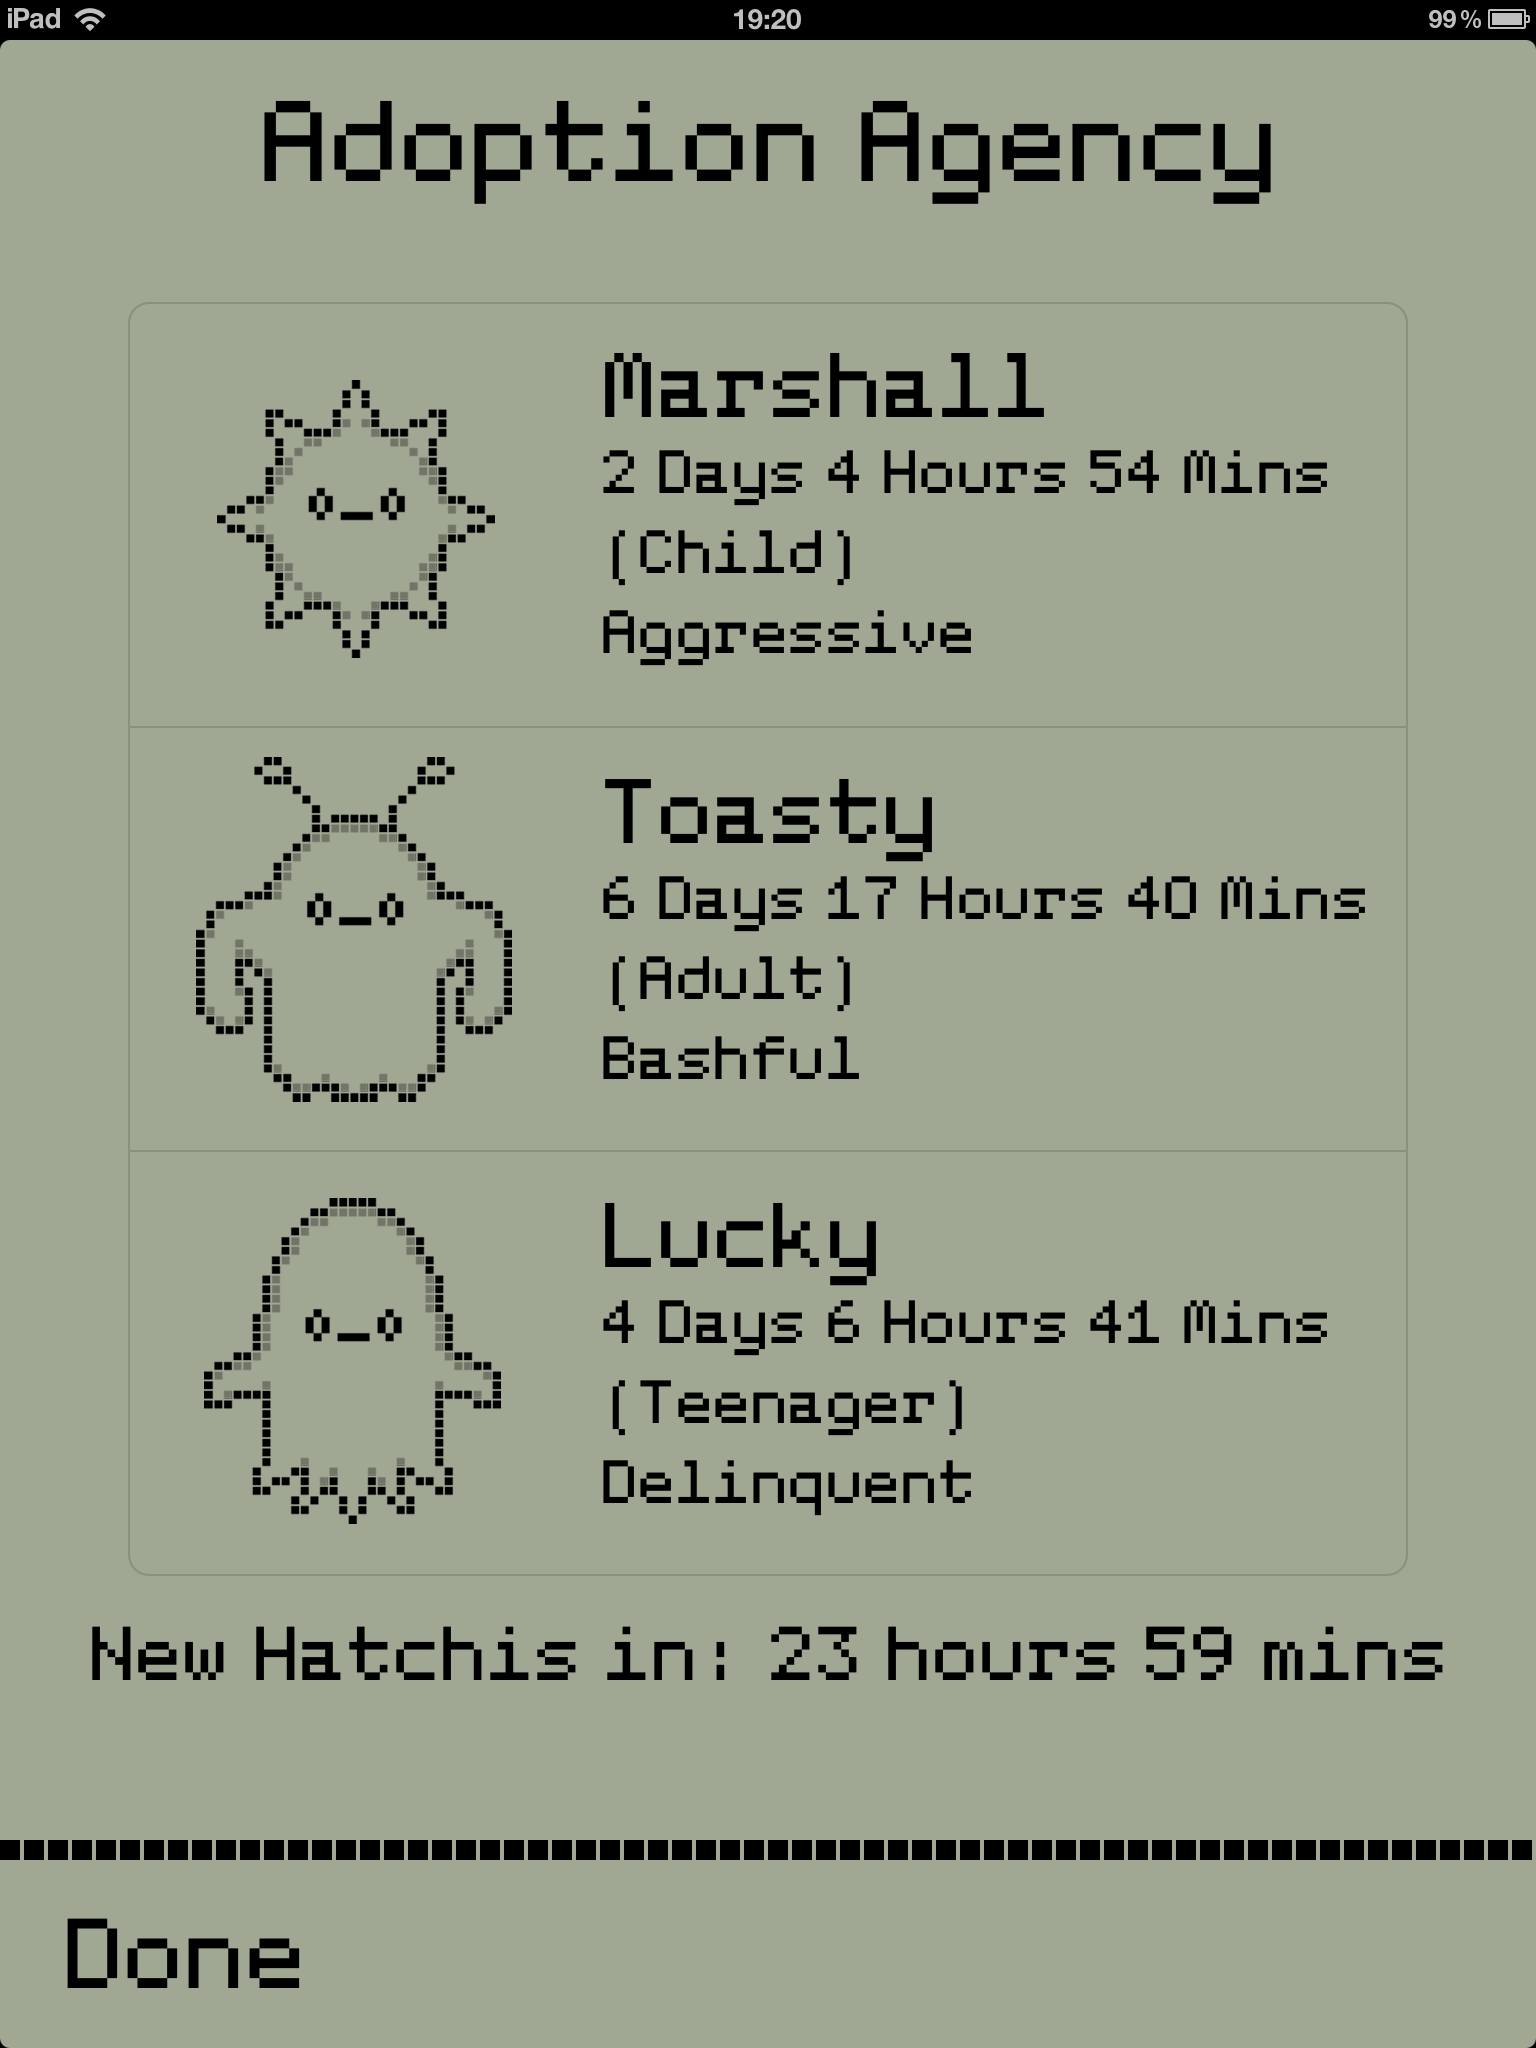 Pixelated Pets Now Up For Adoption In Latest Version Of Hatchi